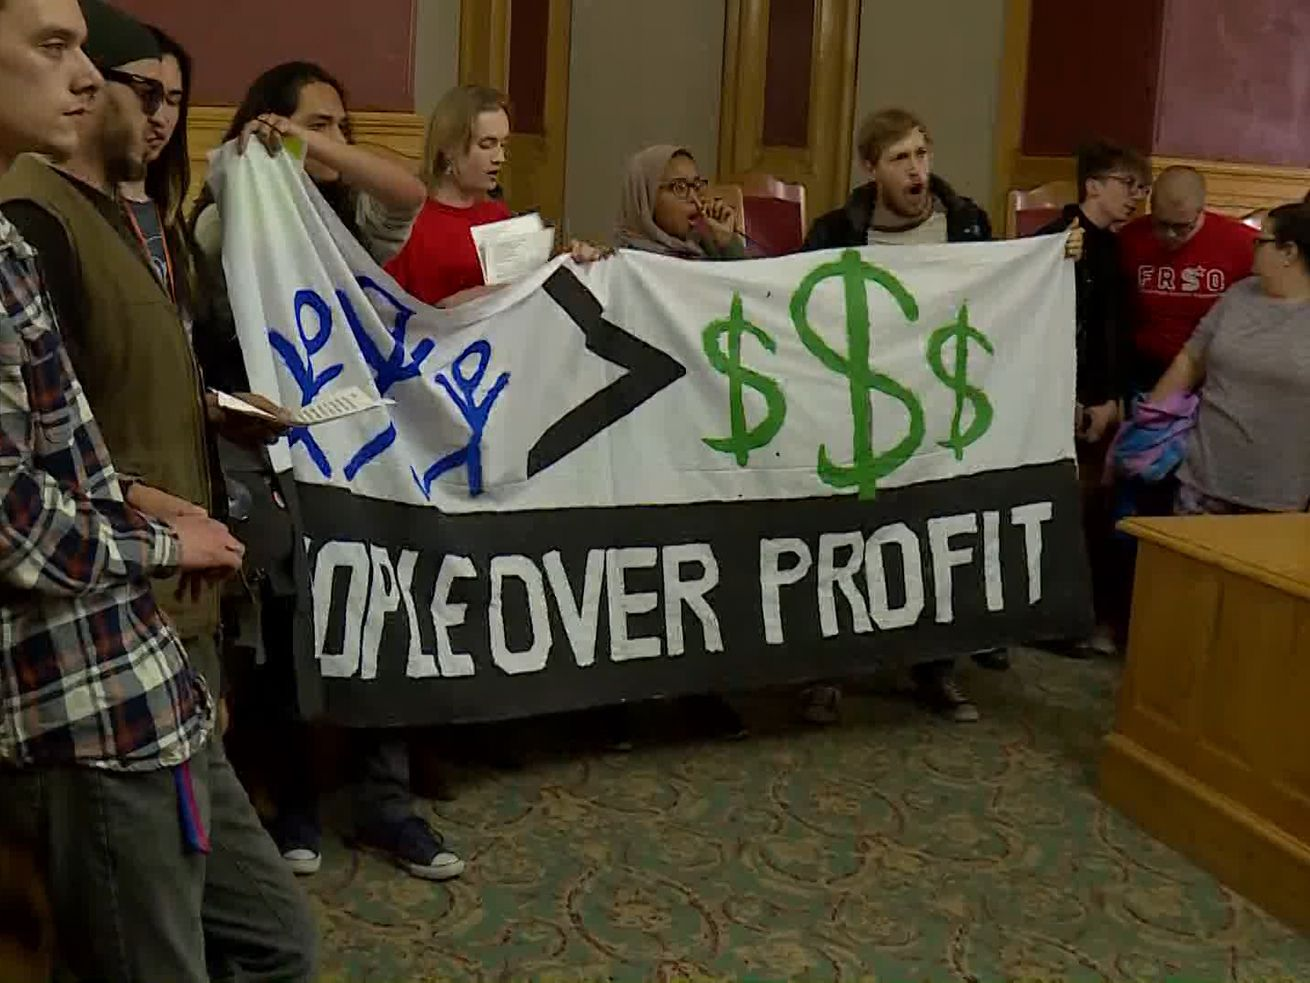 Lt. Gov. Cox calls Salt Lake City homeless protest 'bad form,' says there are 'better ways' to voice concerns